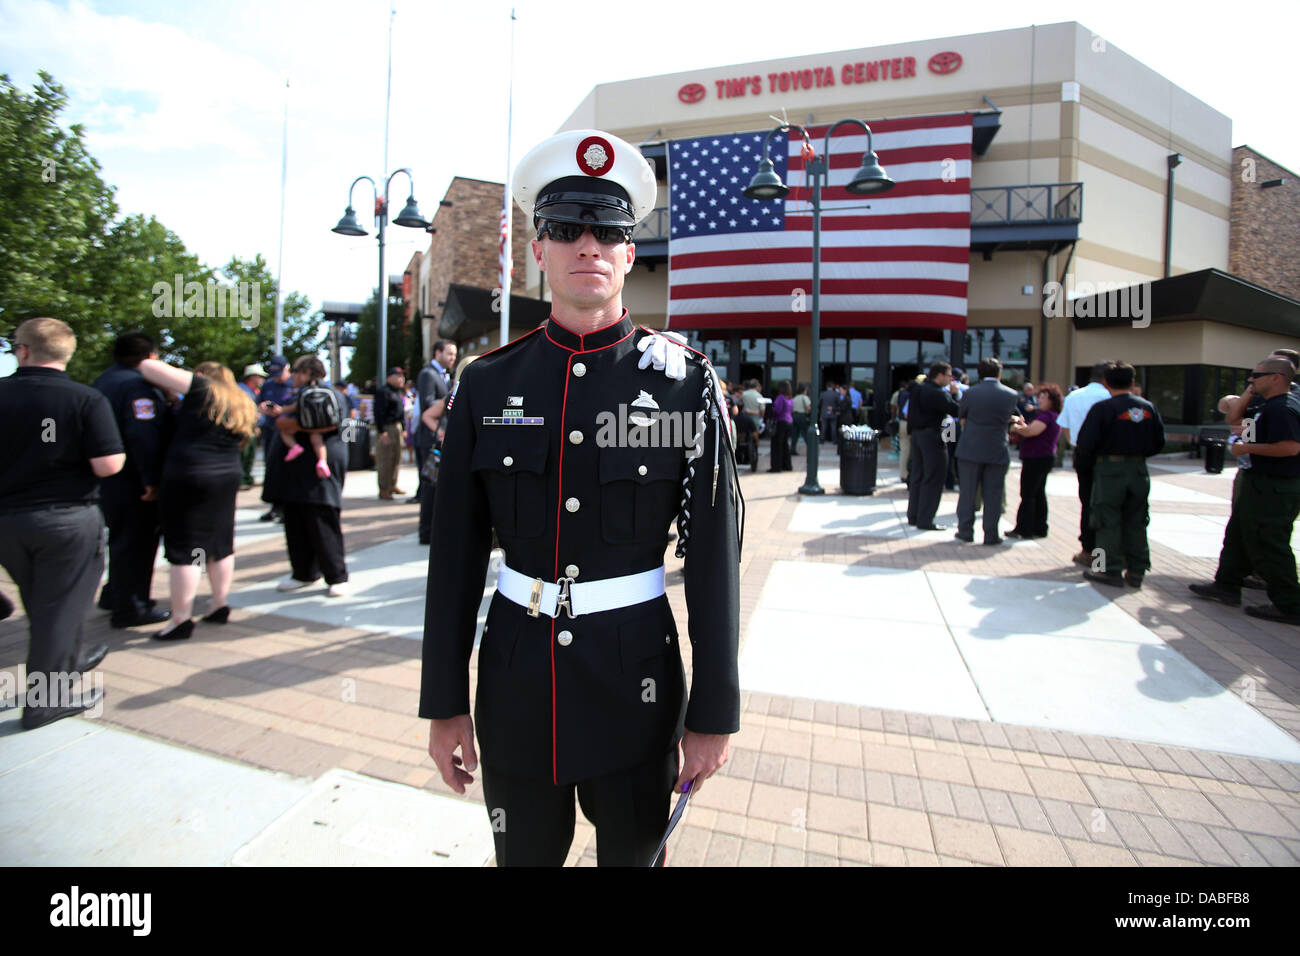 Firefighter greg heckenbach of bloomingdale illinois stands outside of tim s toyota center in prescott arizona the 19 granite mountain hotshots killed in